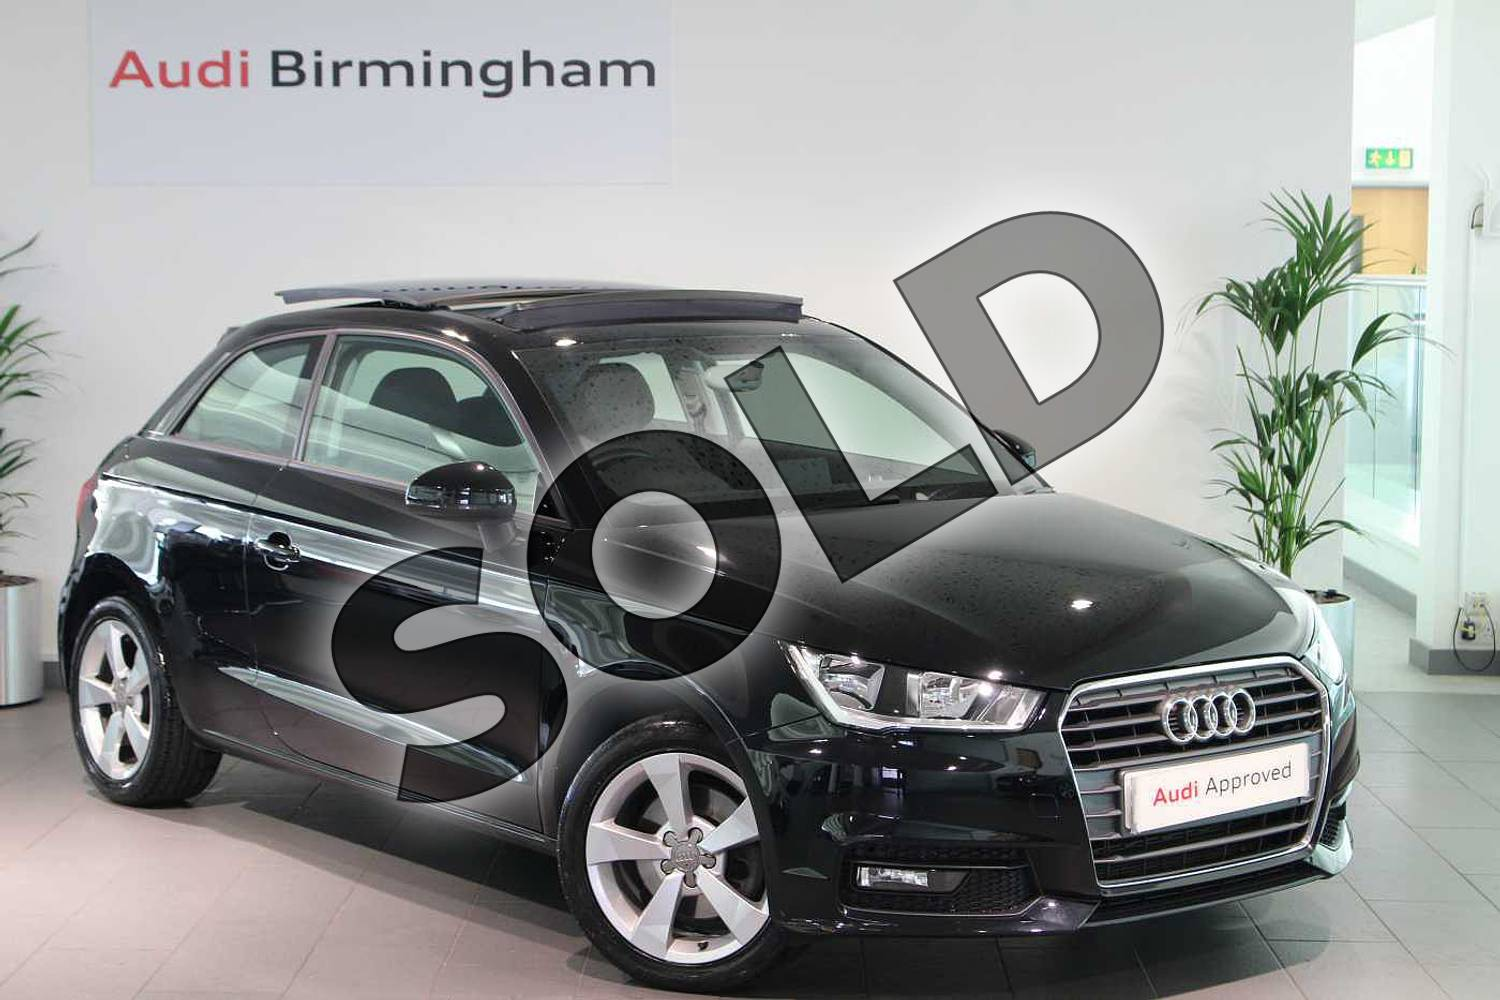 2015 Audi A1 Hatchback 1.4 TFSI Sport 3dr S Tronic in Brilliant black at Birmingham Audi